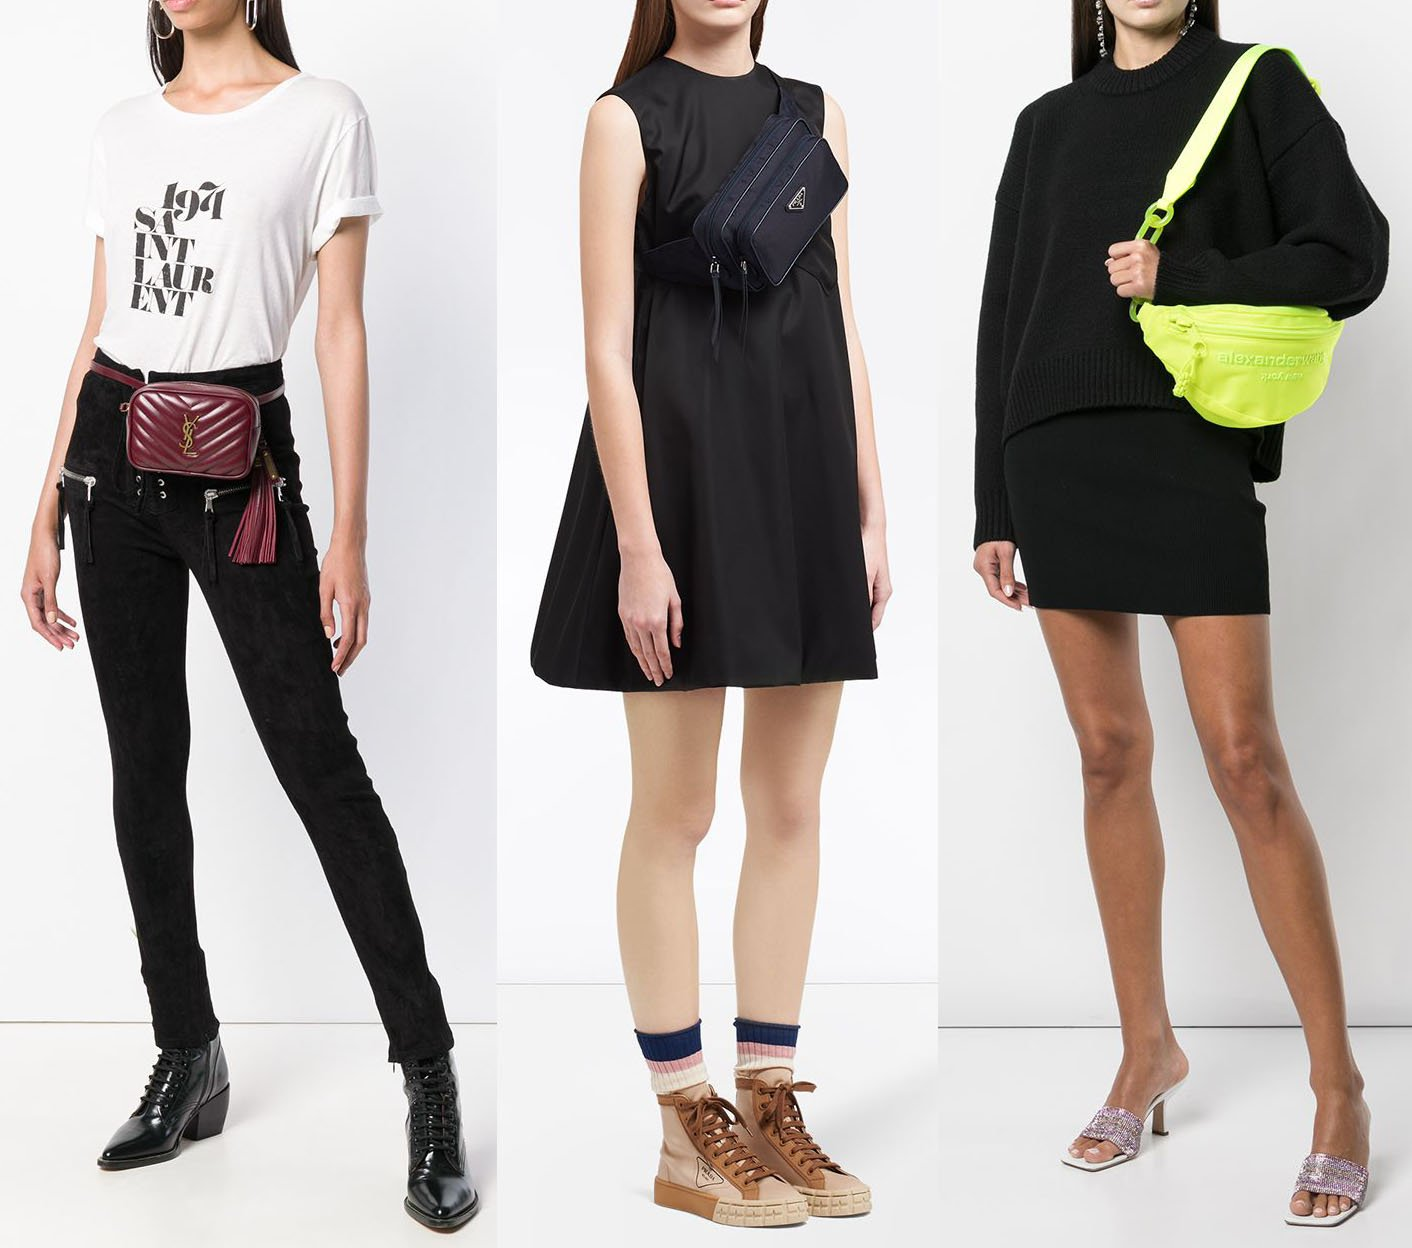 Belt bags can be carried around the waist, across the body, or over the shoulder